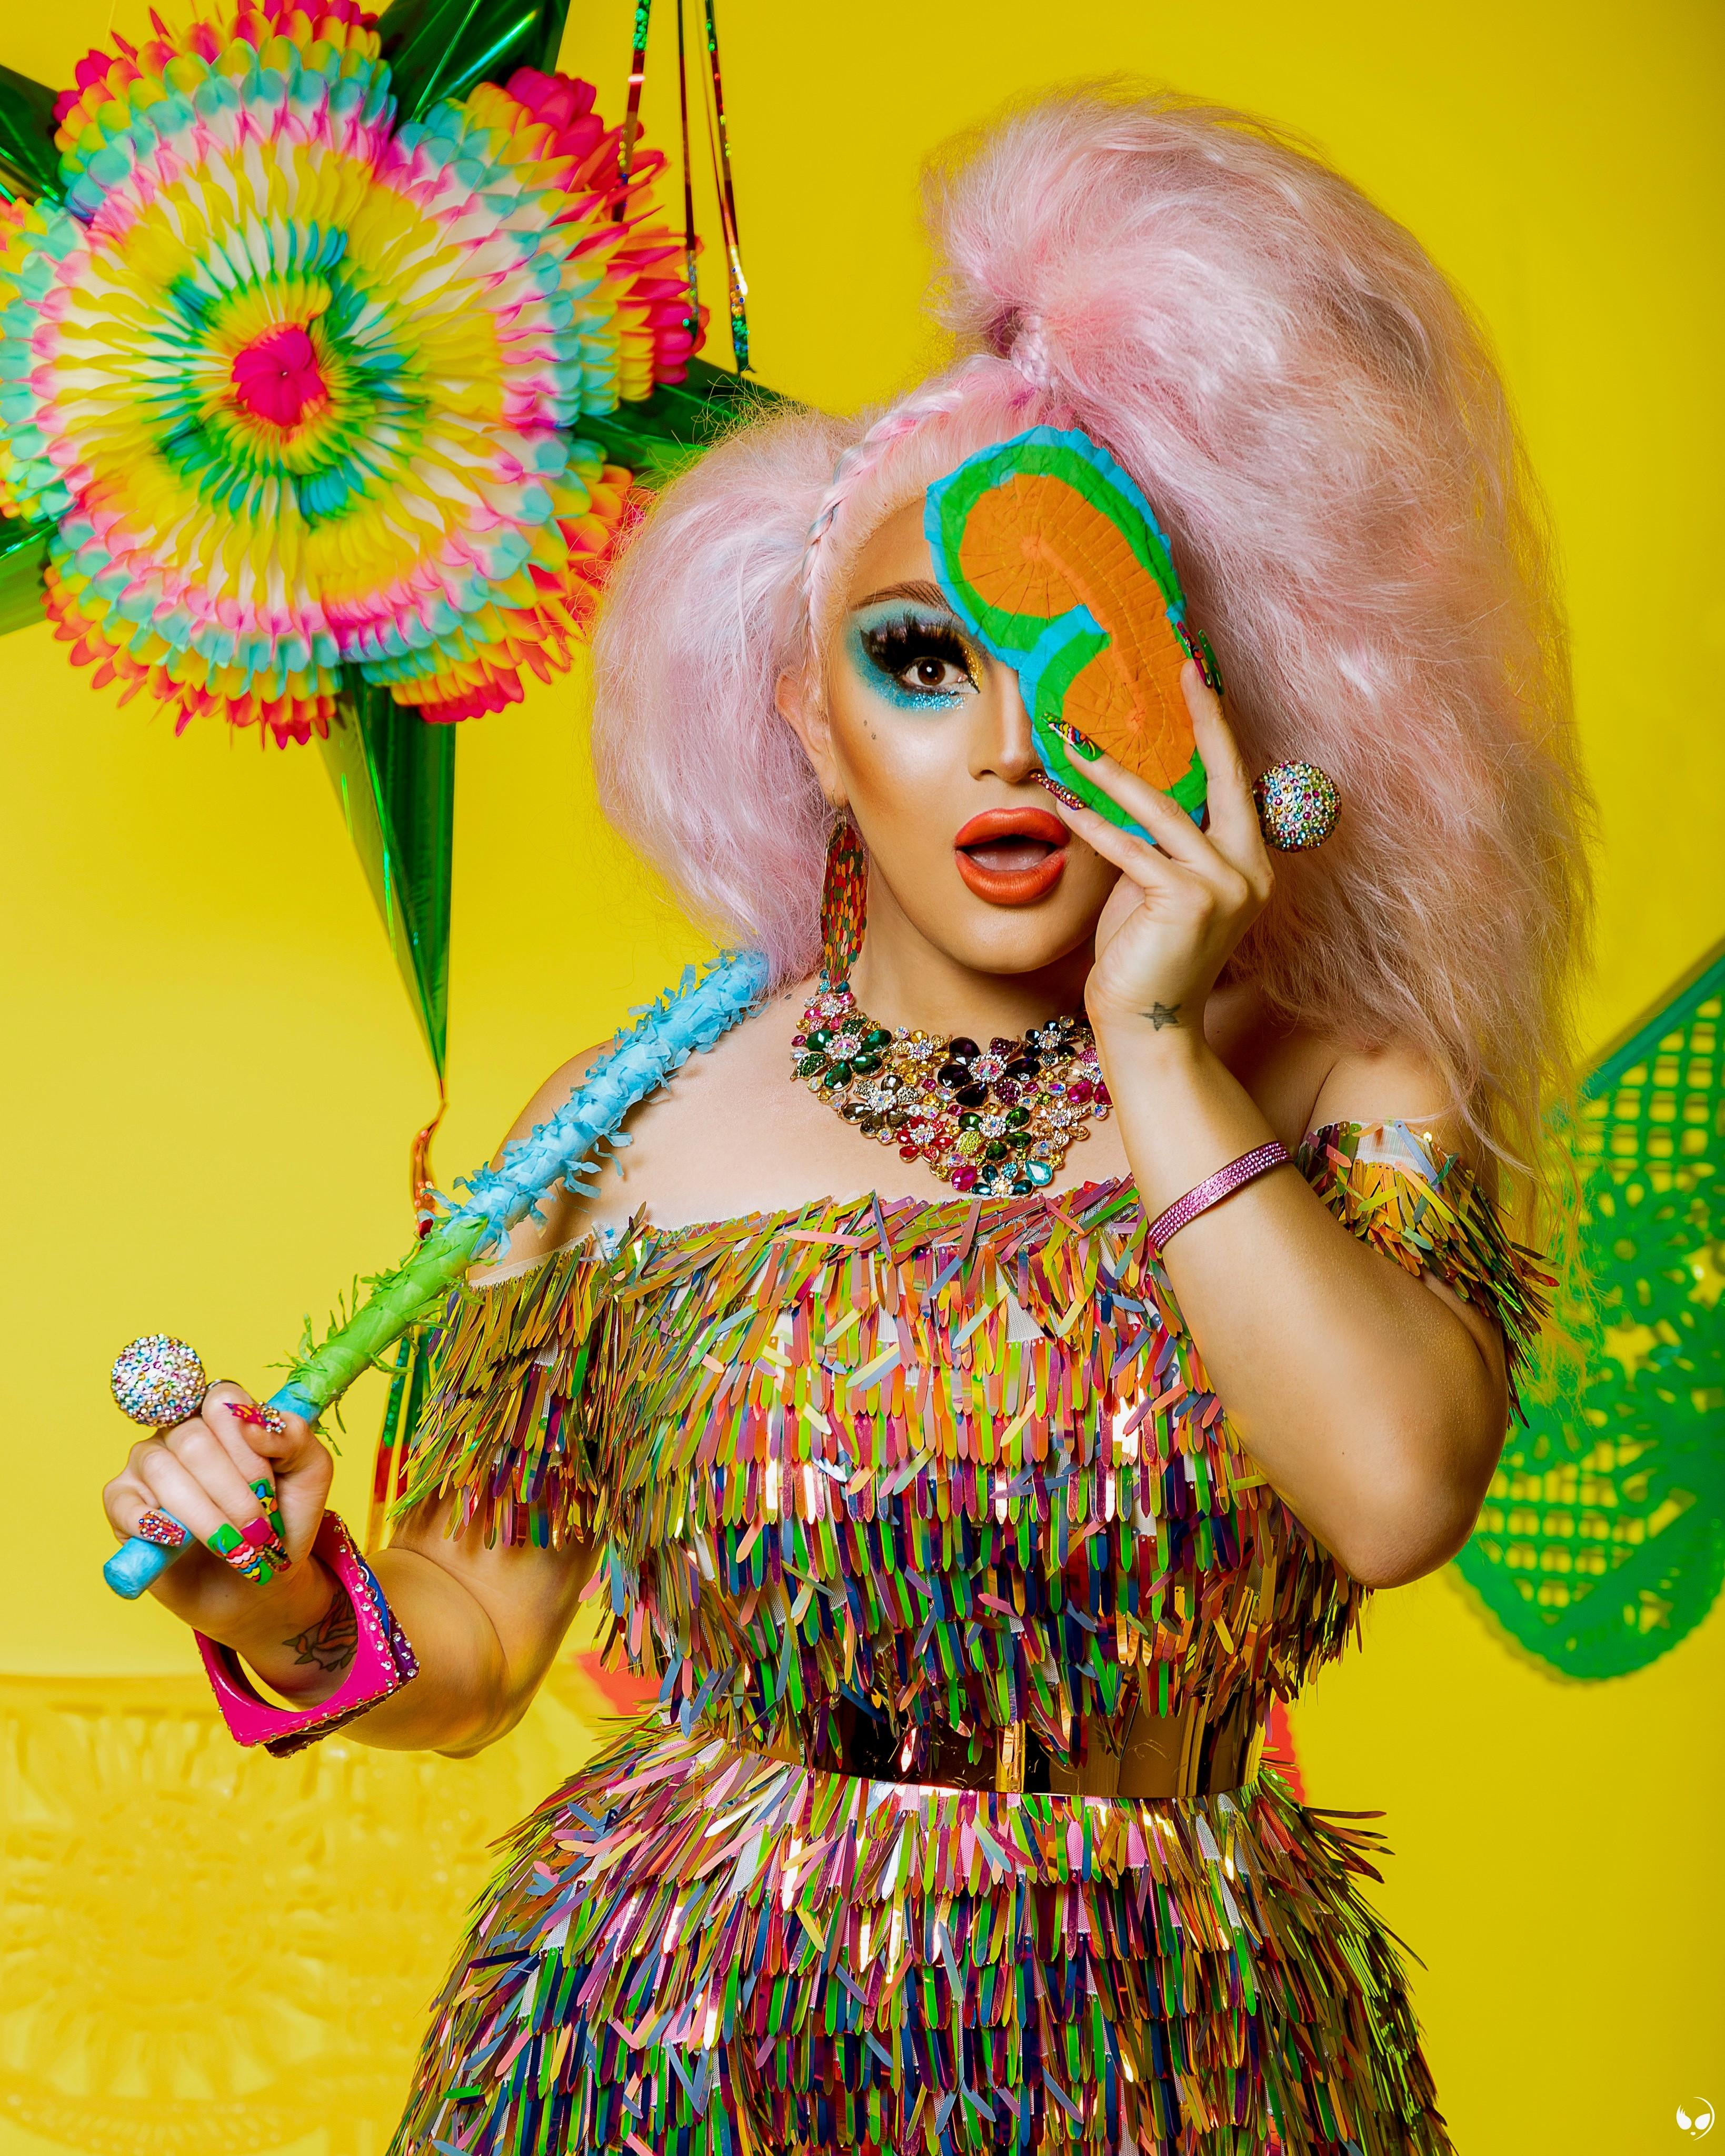 A person with big pink hair, dressed in colorful apparel, jewelry, and makeup, covers their left eye with a mask, with an expression of surprise.